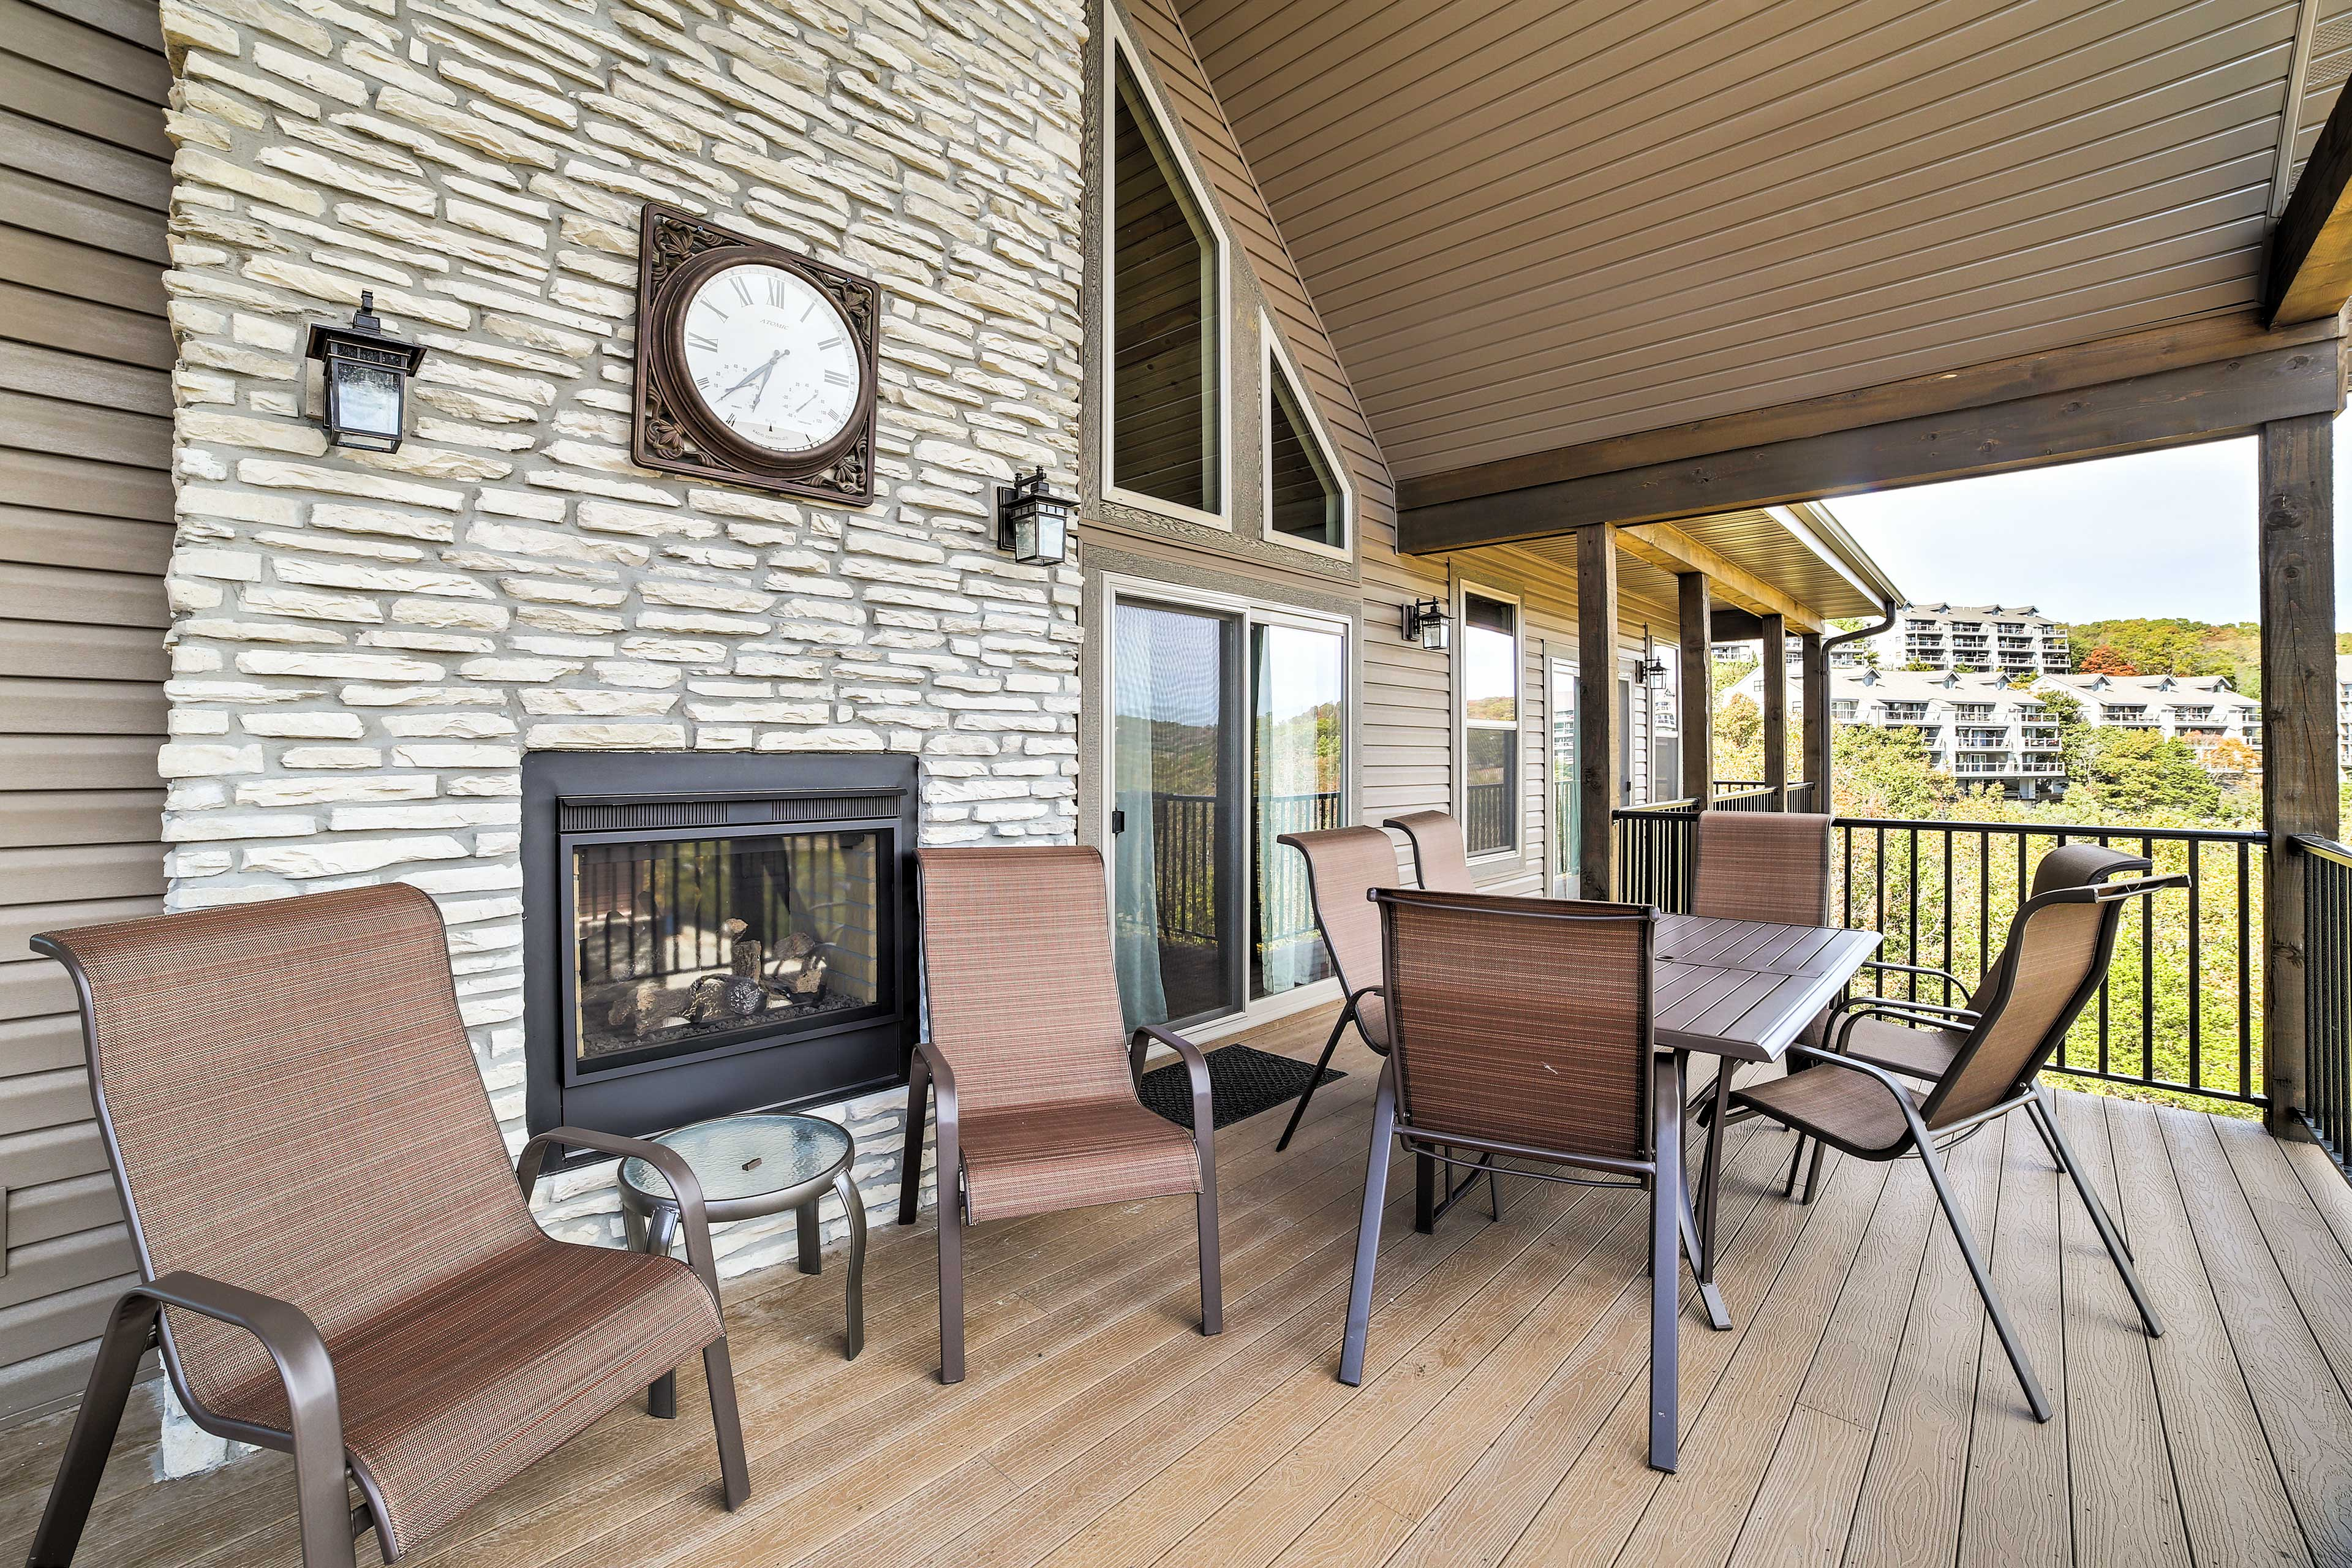 Sit back on this spacious deck and take in the panoramic views of the Ozark wilderness.